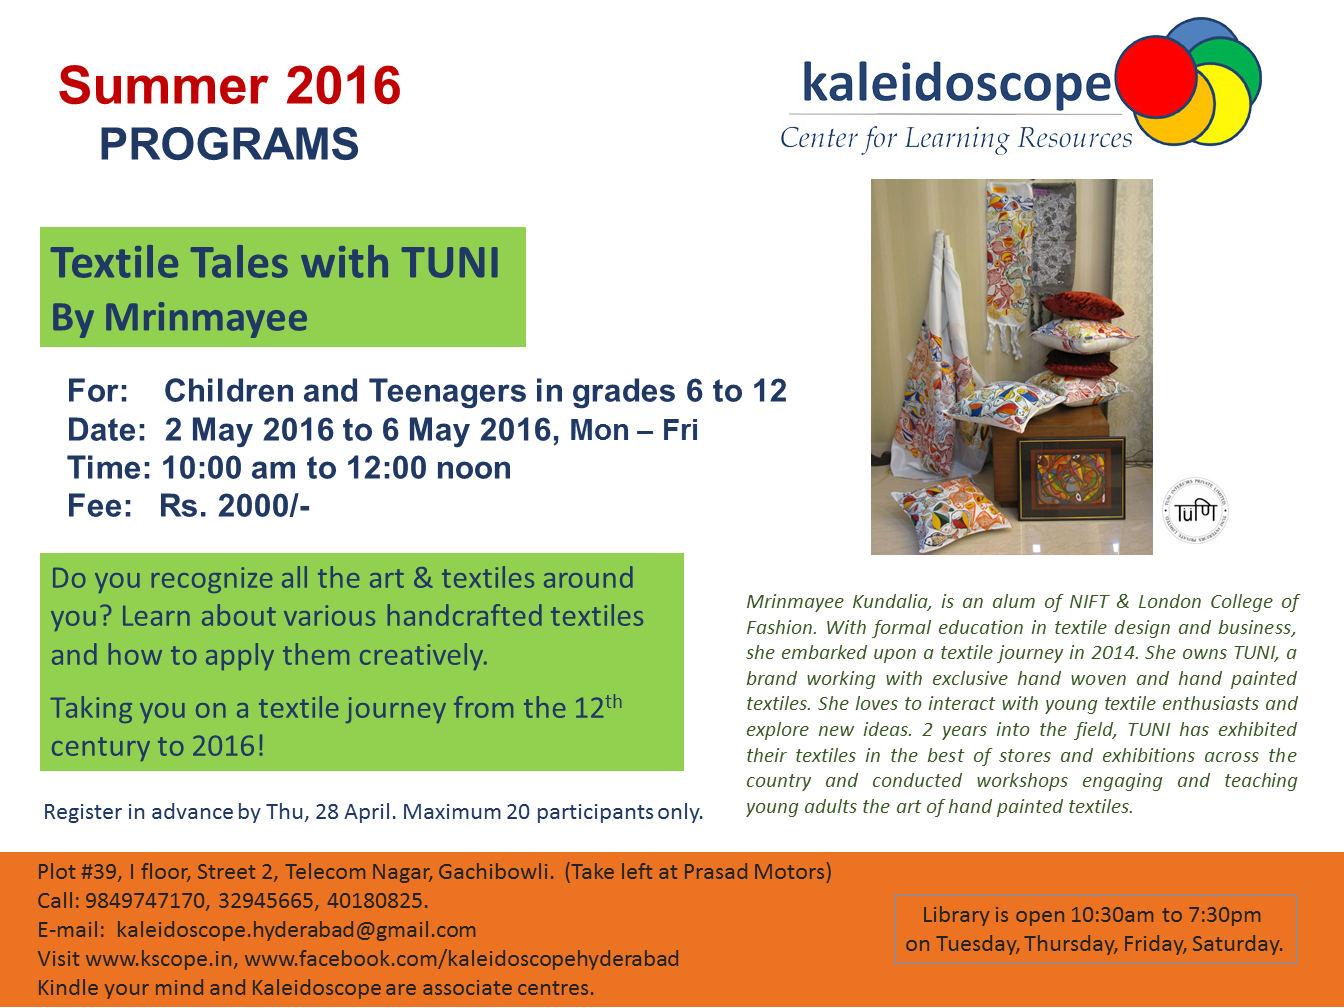 Textile Tales with TUNI